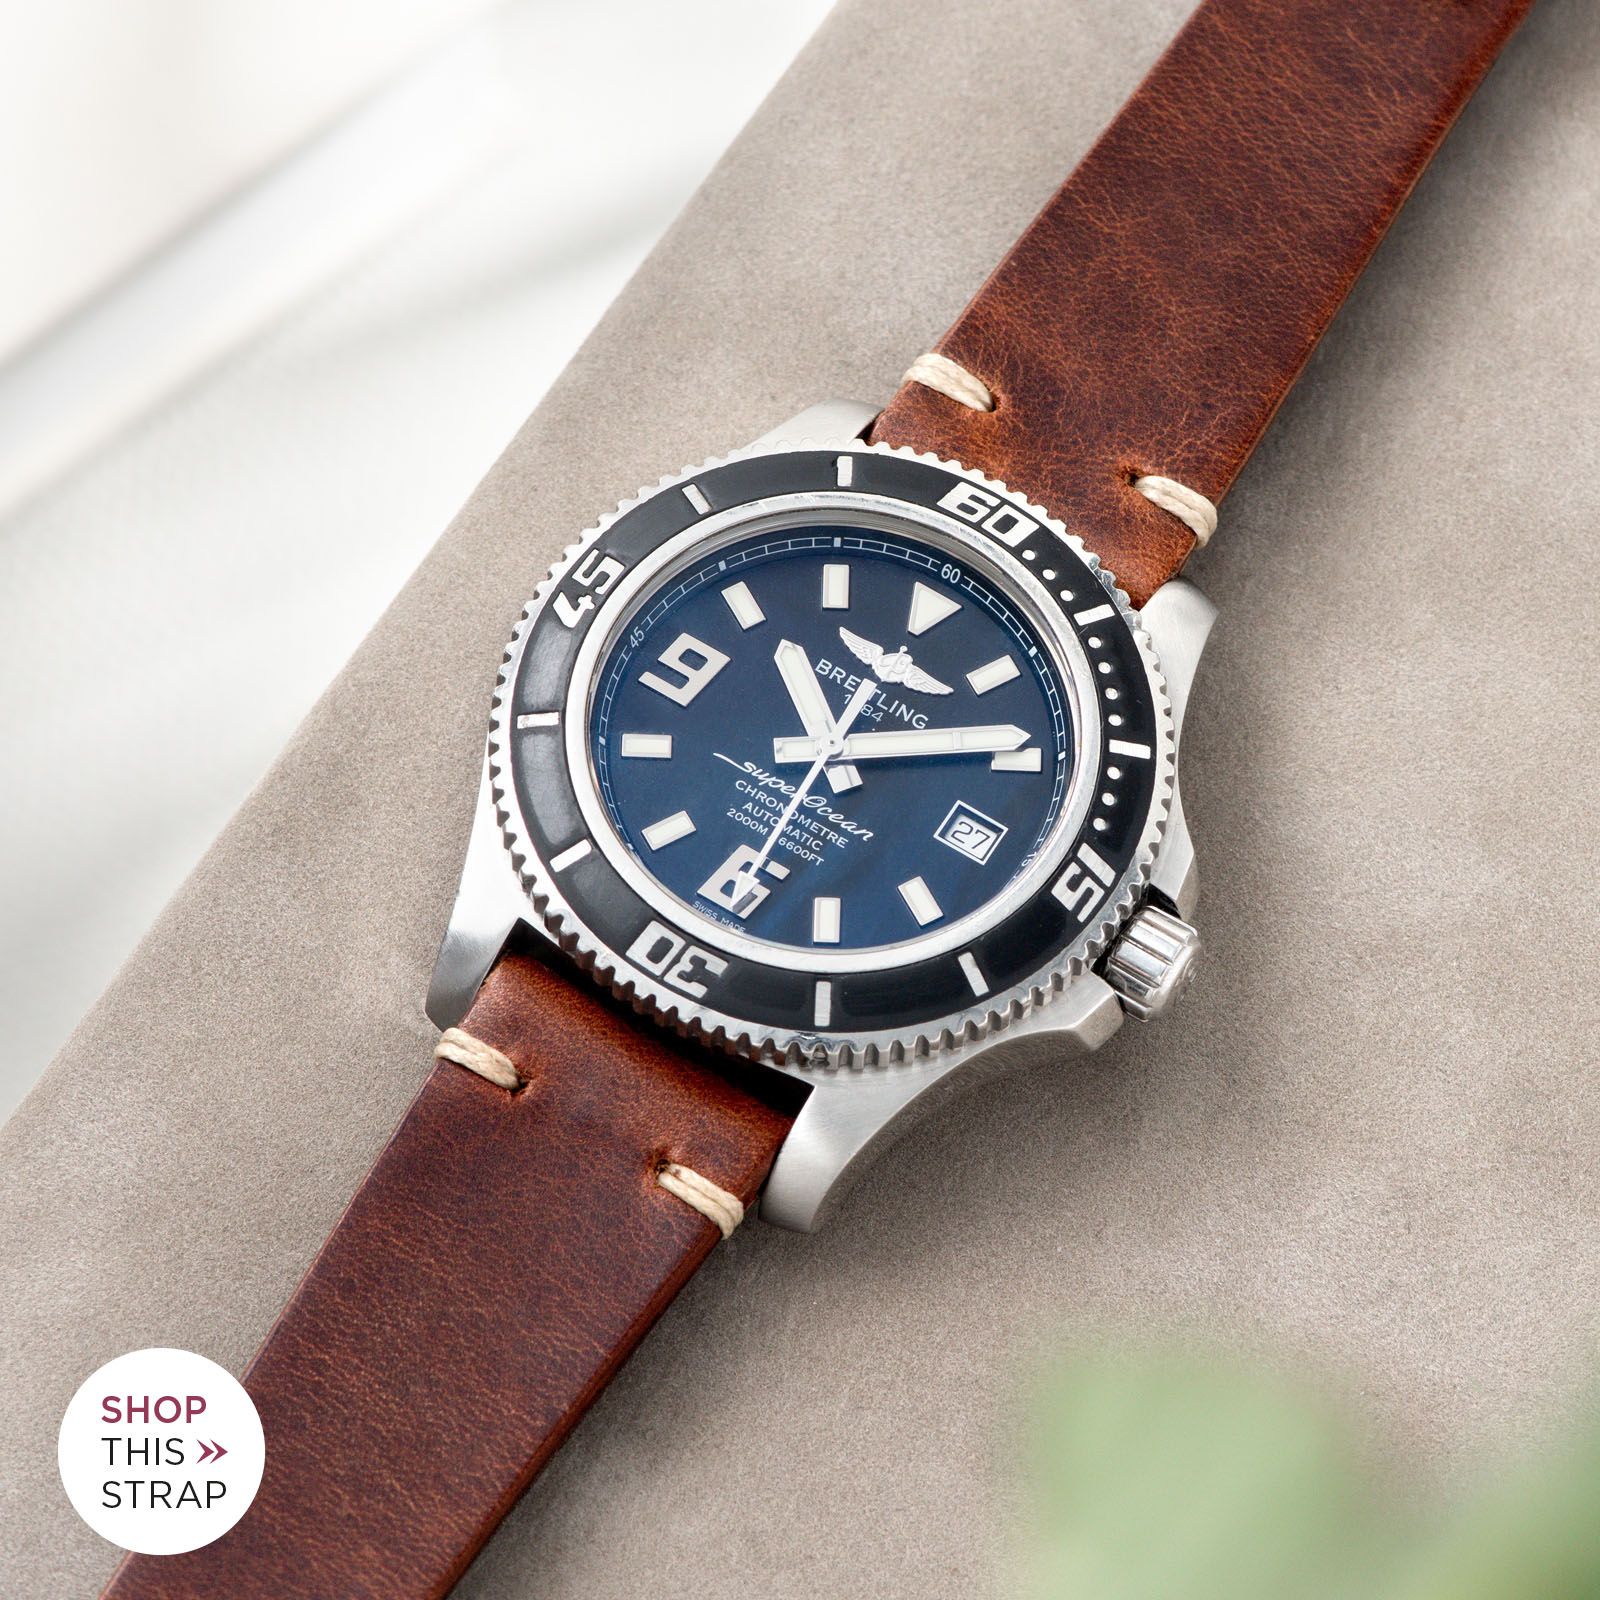 Bulang and Sons_Strap Guide_Breitling Superocean_Siena Brown Leather Watch Strap